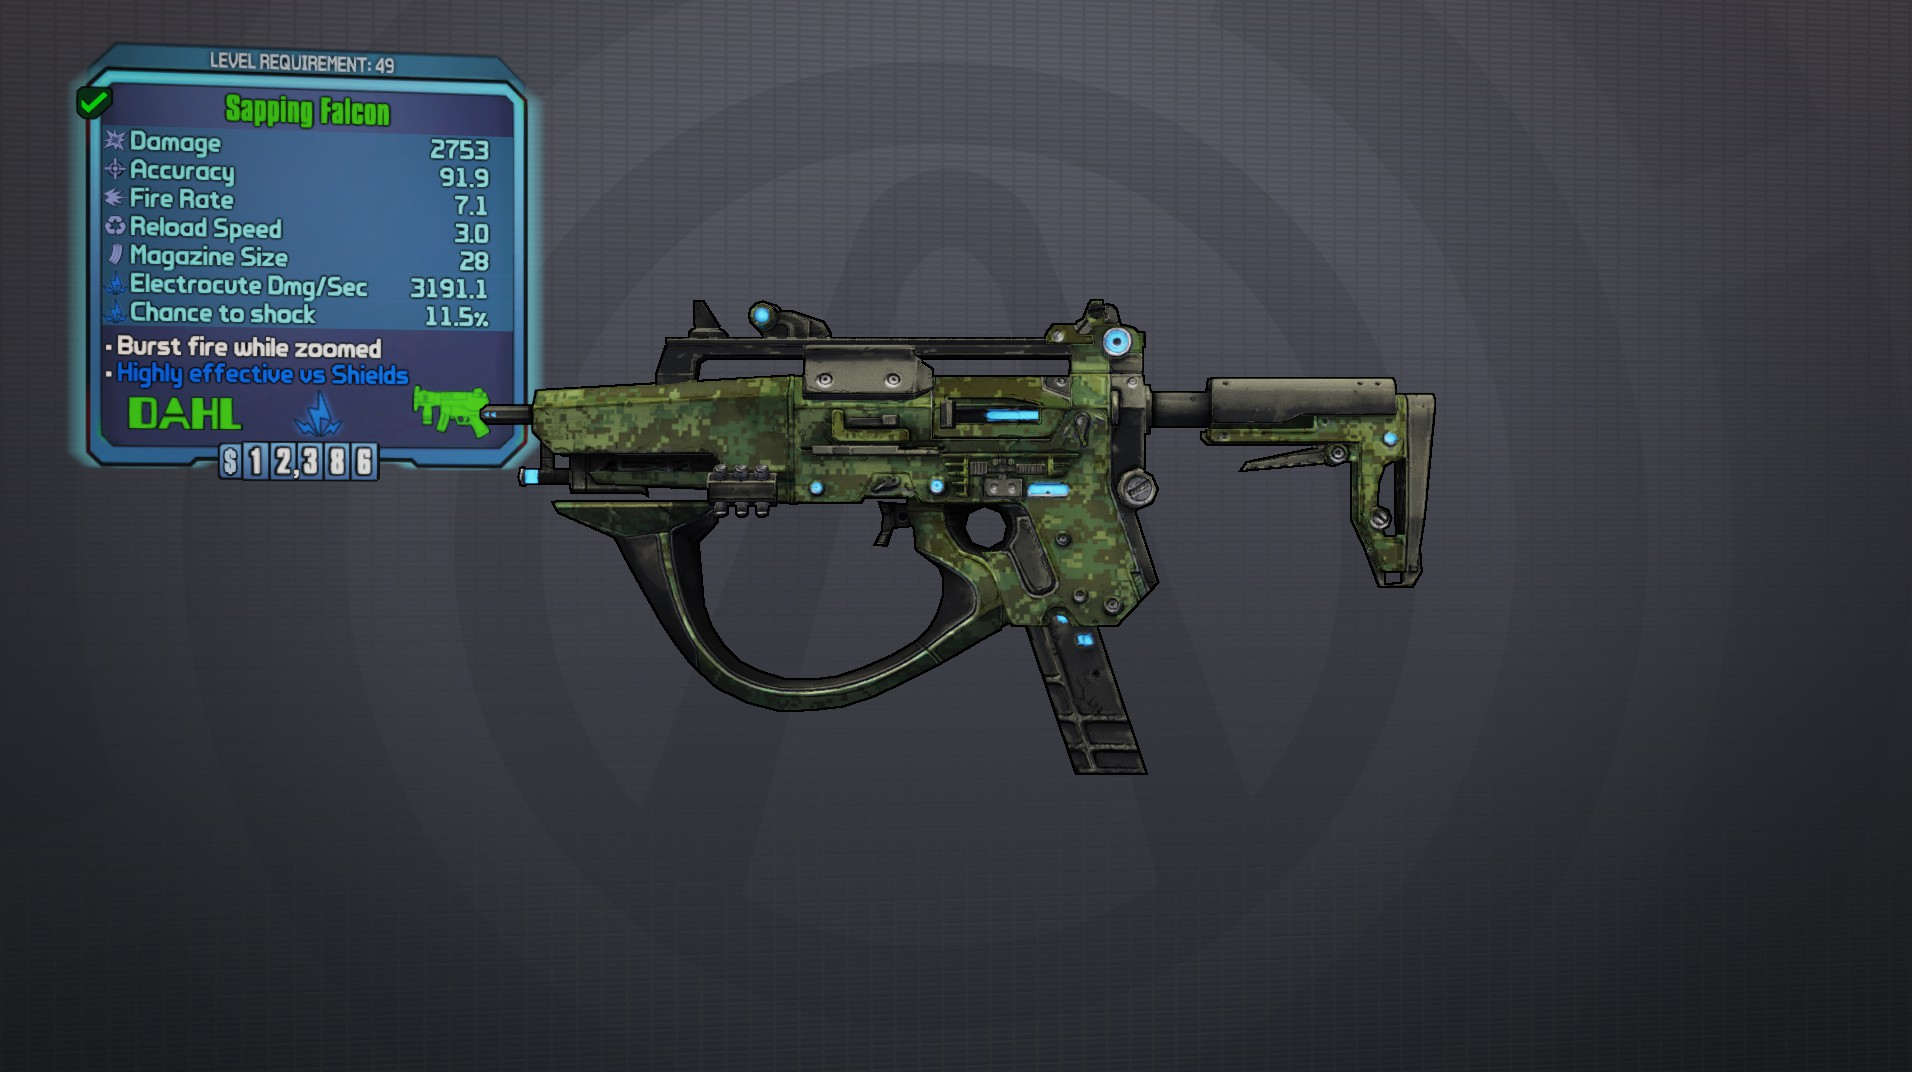 Smg-bb trading system